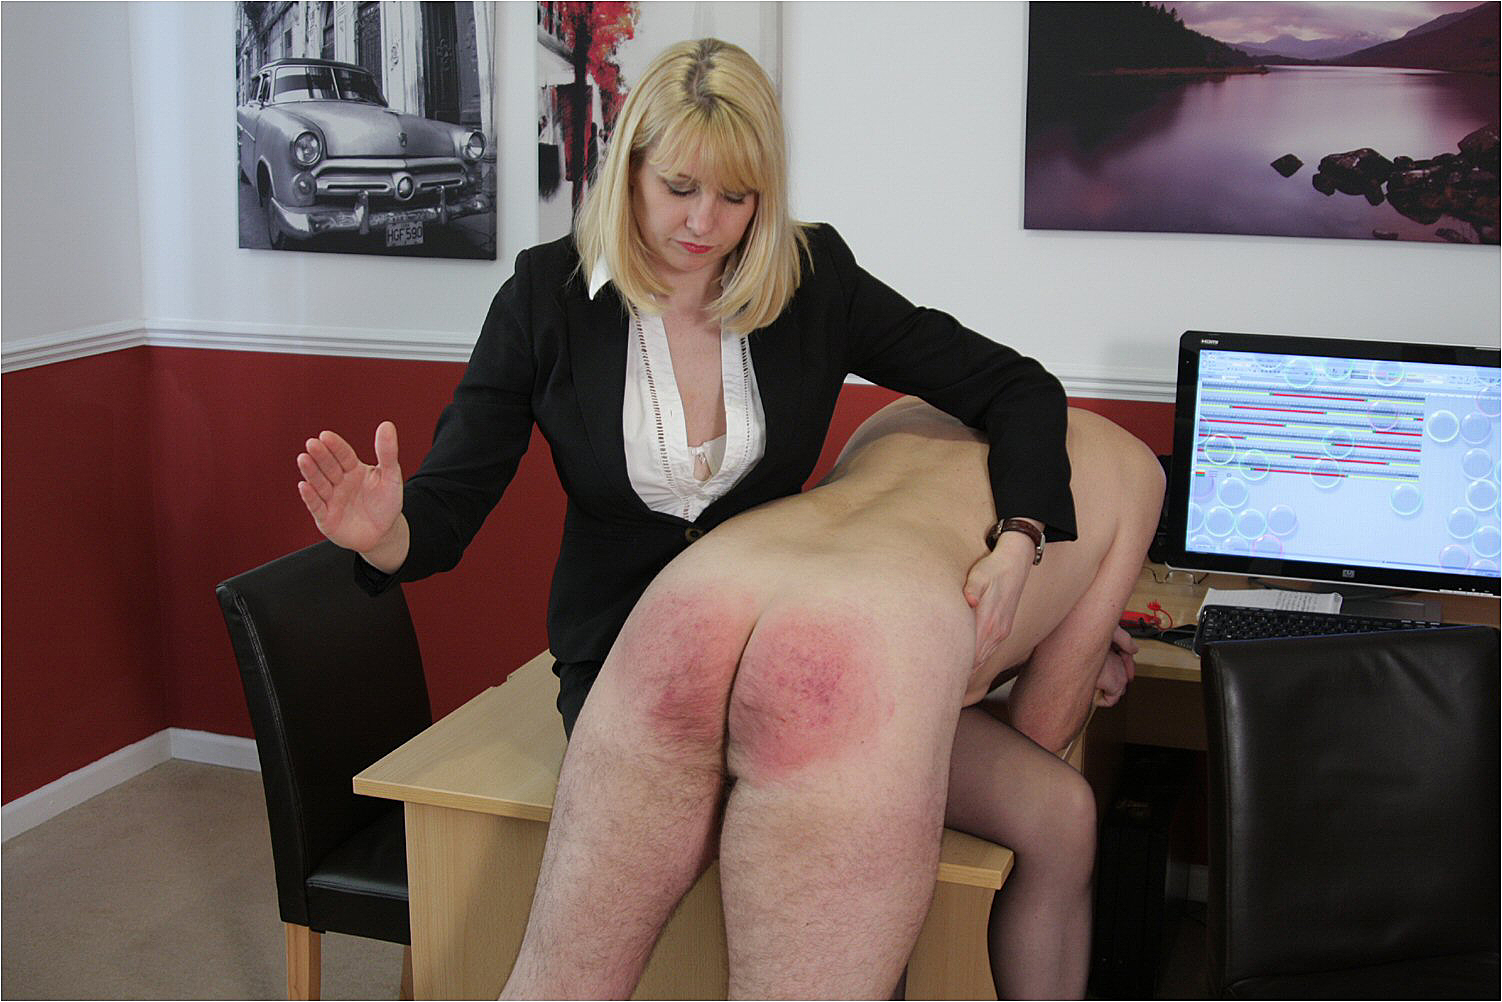 caning of women